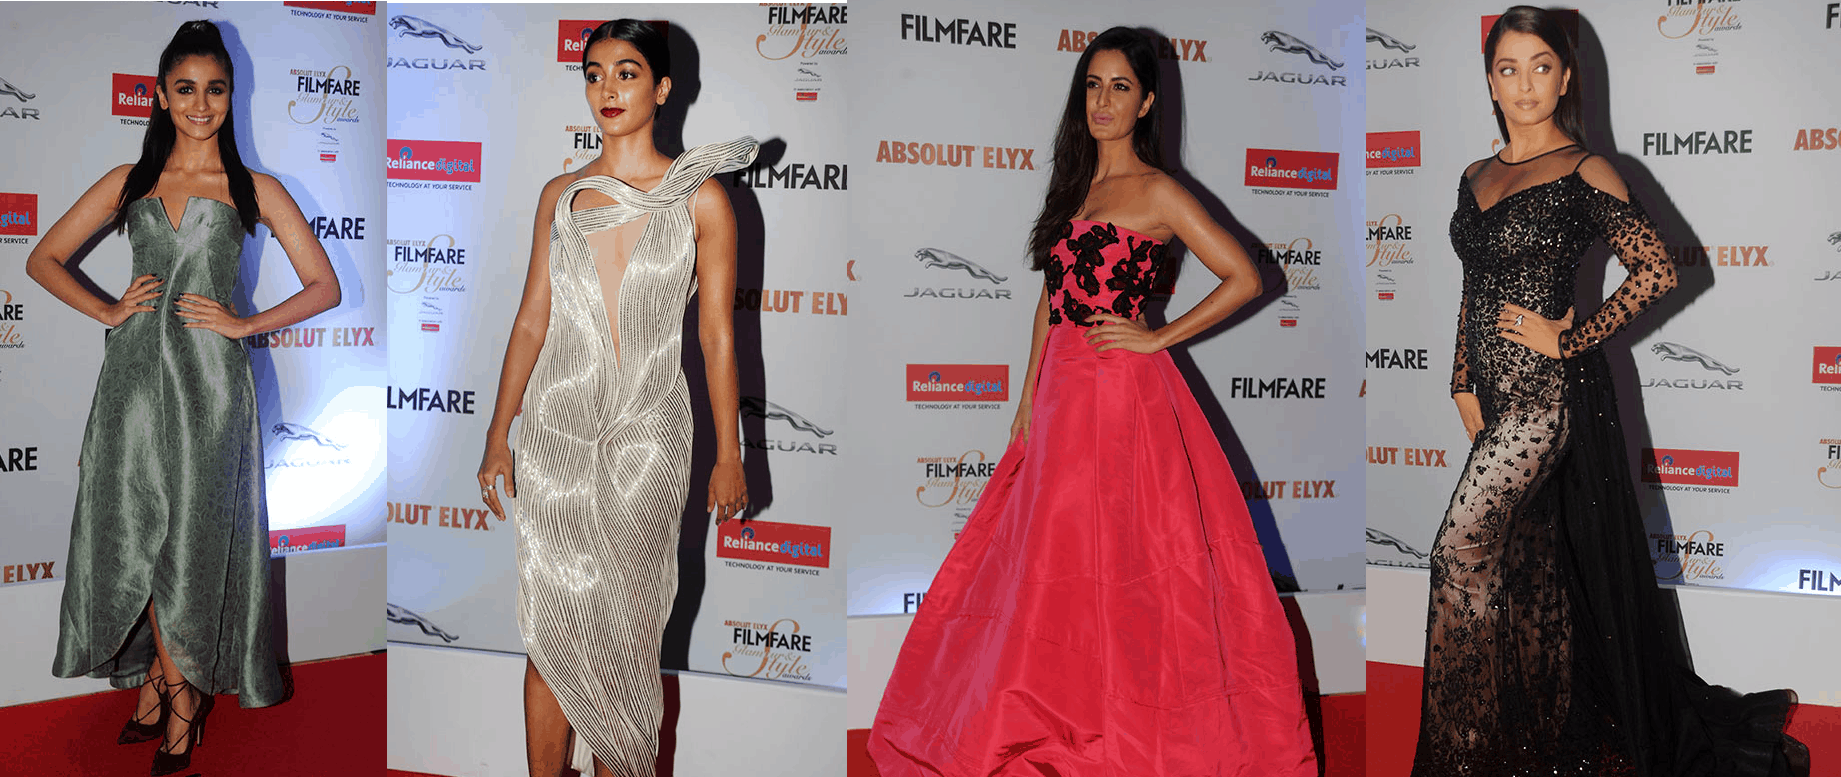 Coverpic 1 - Glamour & Style Awards: Red Carpet Style Review